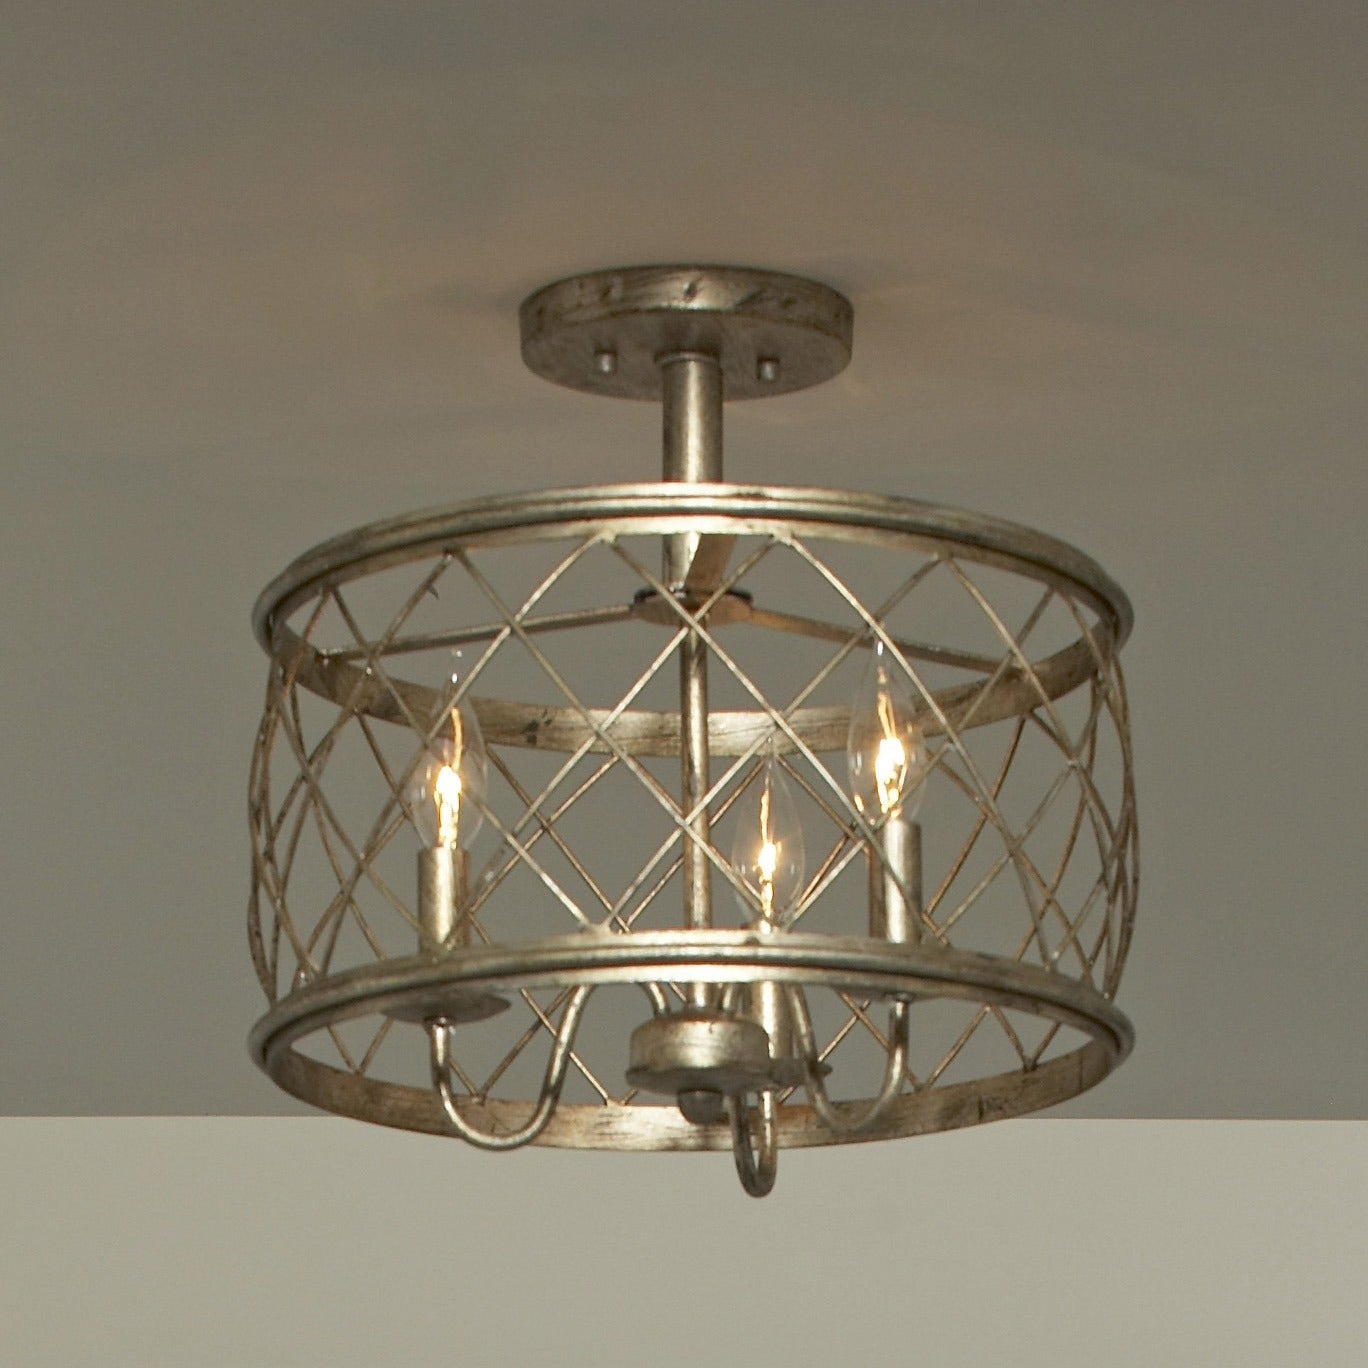 Quoizel dury century silver leaf finish metal medium semi flush quoizel dury century silver leaf finish metal medium semi flush mount light fixture free shipping today overstock 16211468 arubaitofo Choice Image